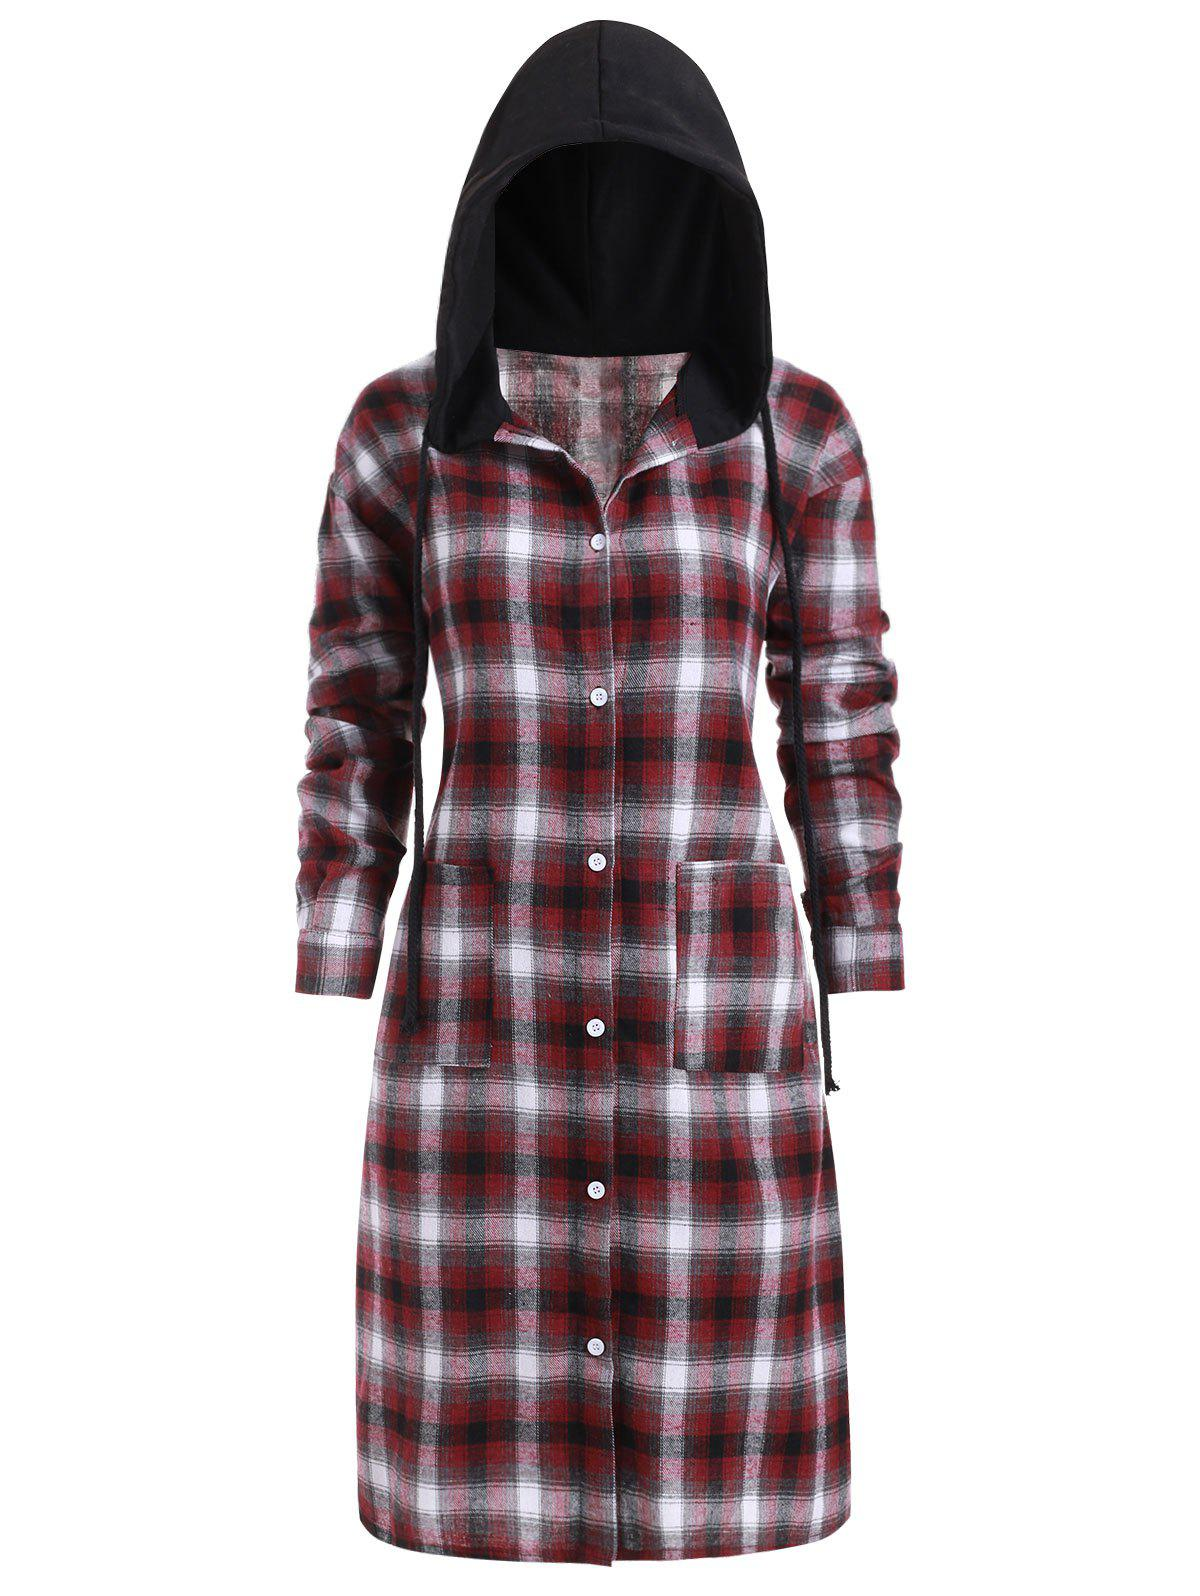 Shops Slit Plaid Pockets Button Up Casual Plus Size Dress